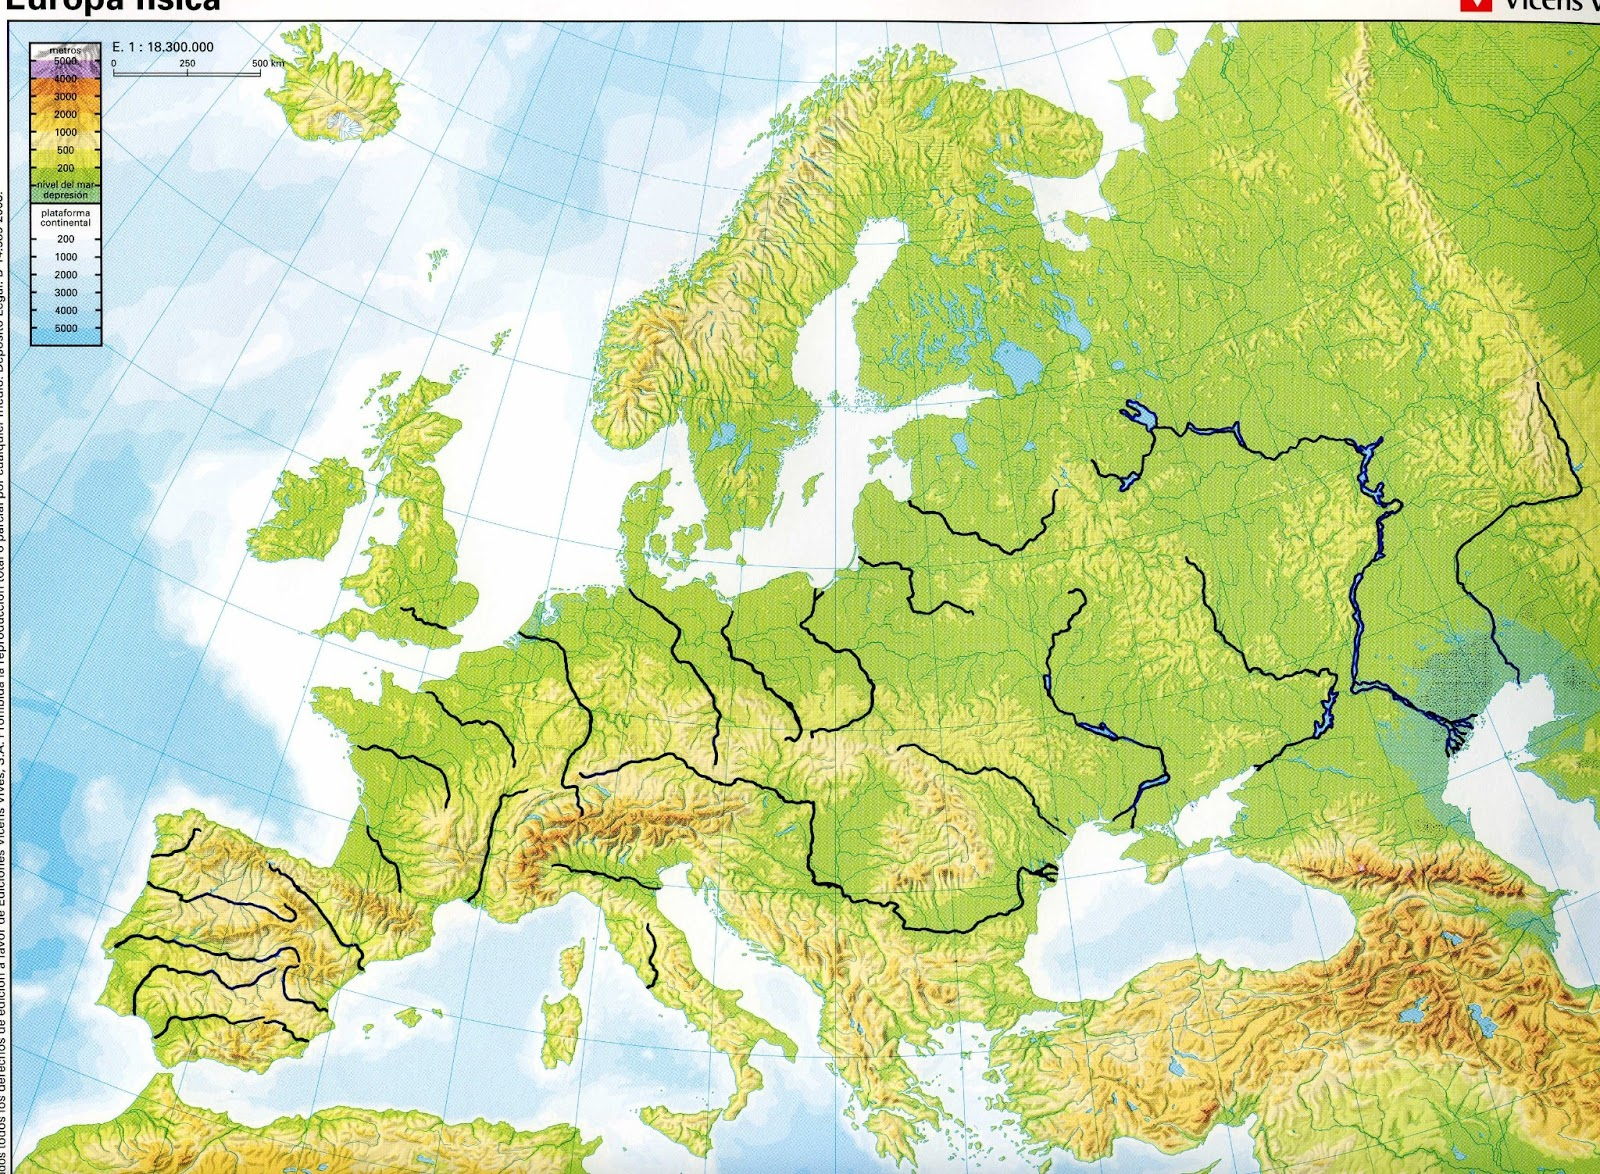 Map Of Spain And Europe.Geography And History Blog 3º Blank Maps Spain And Europe